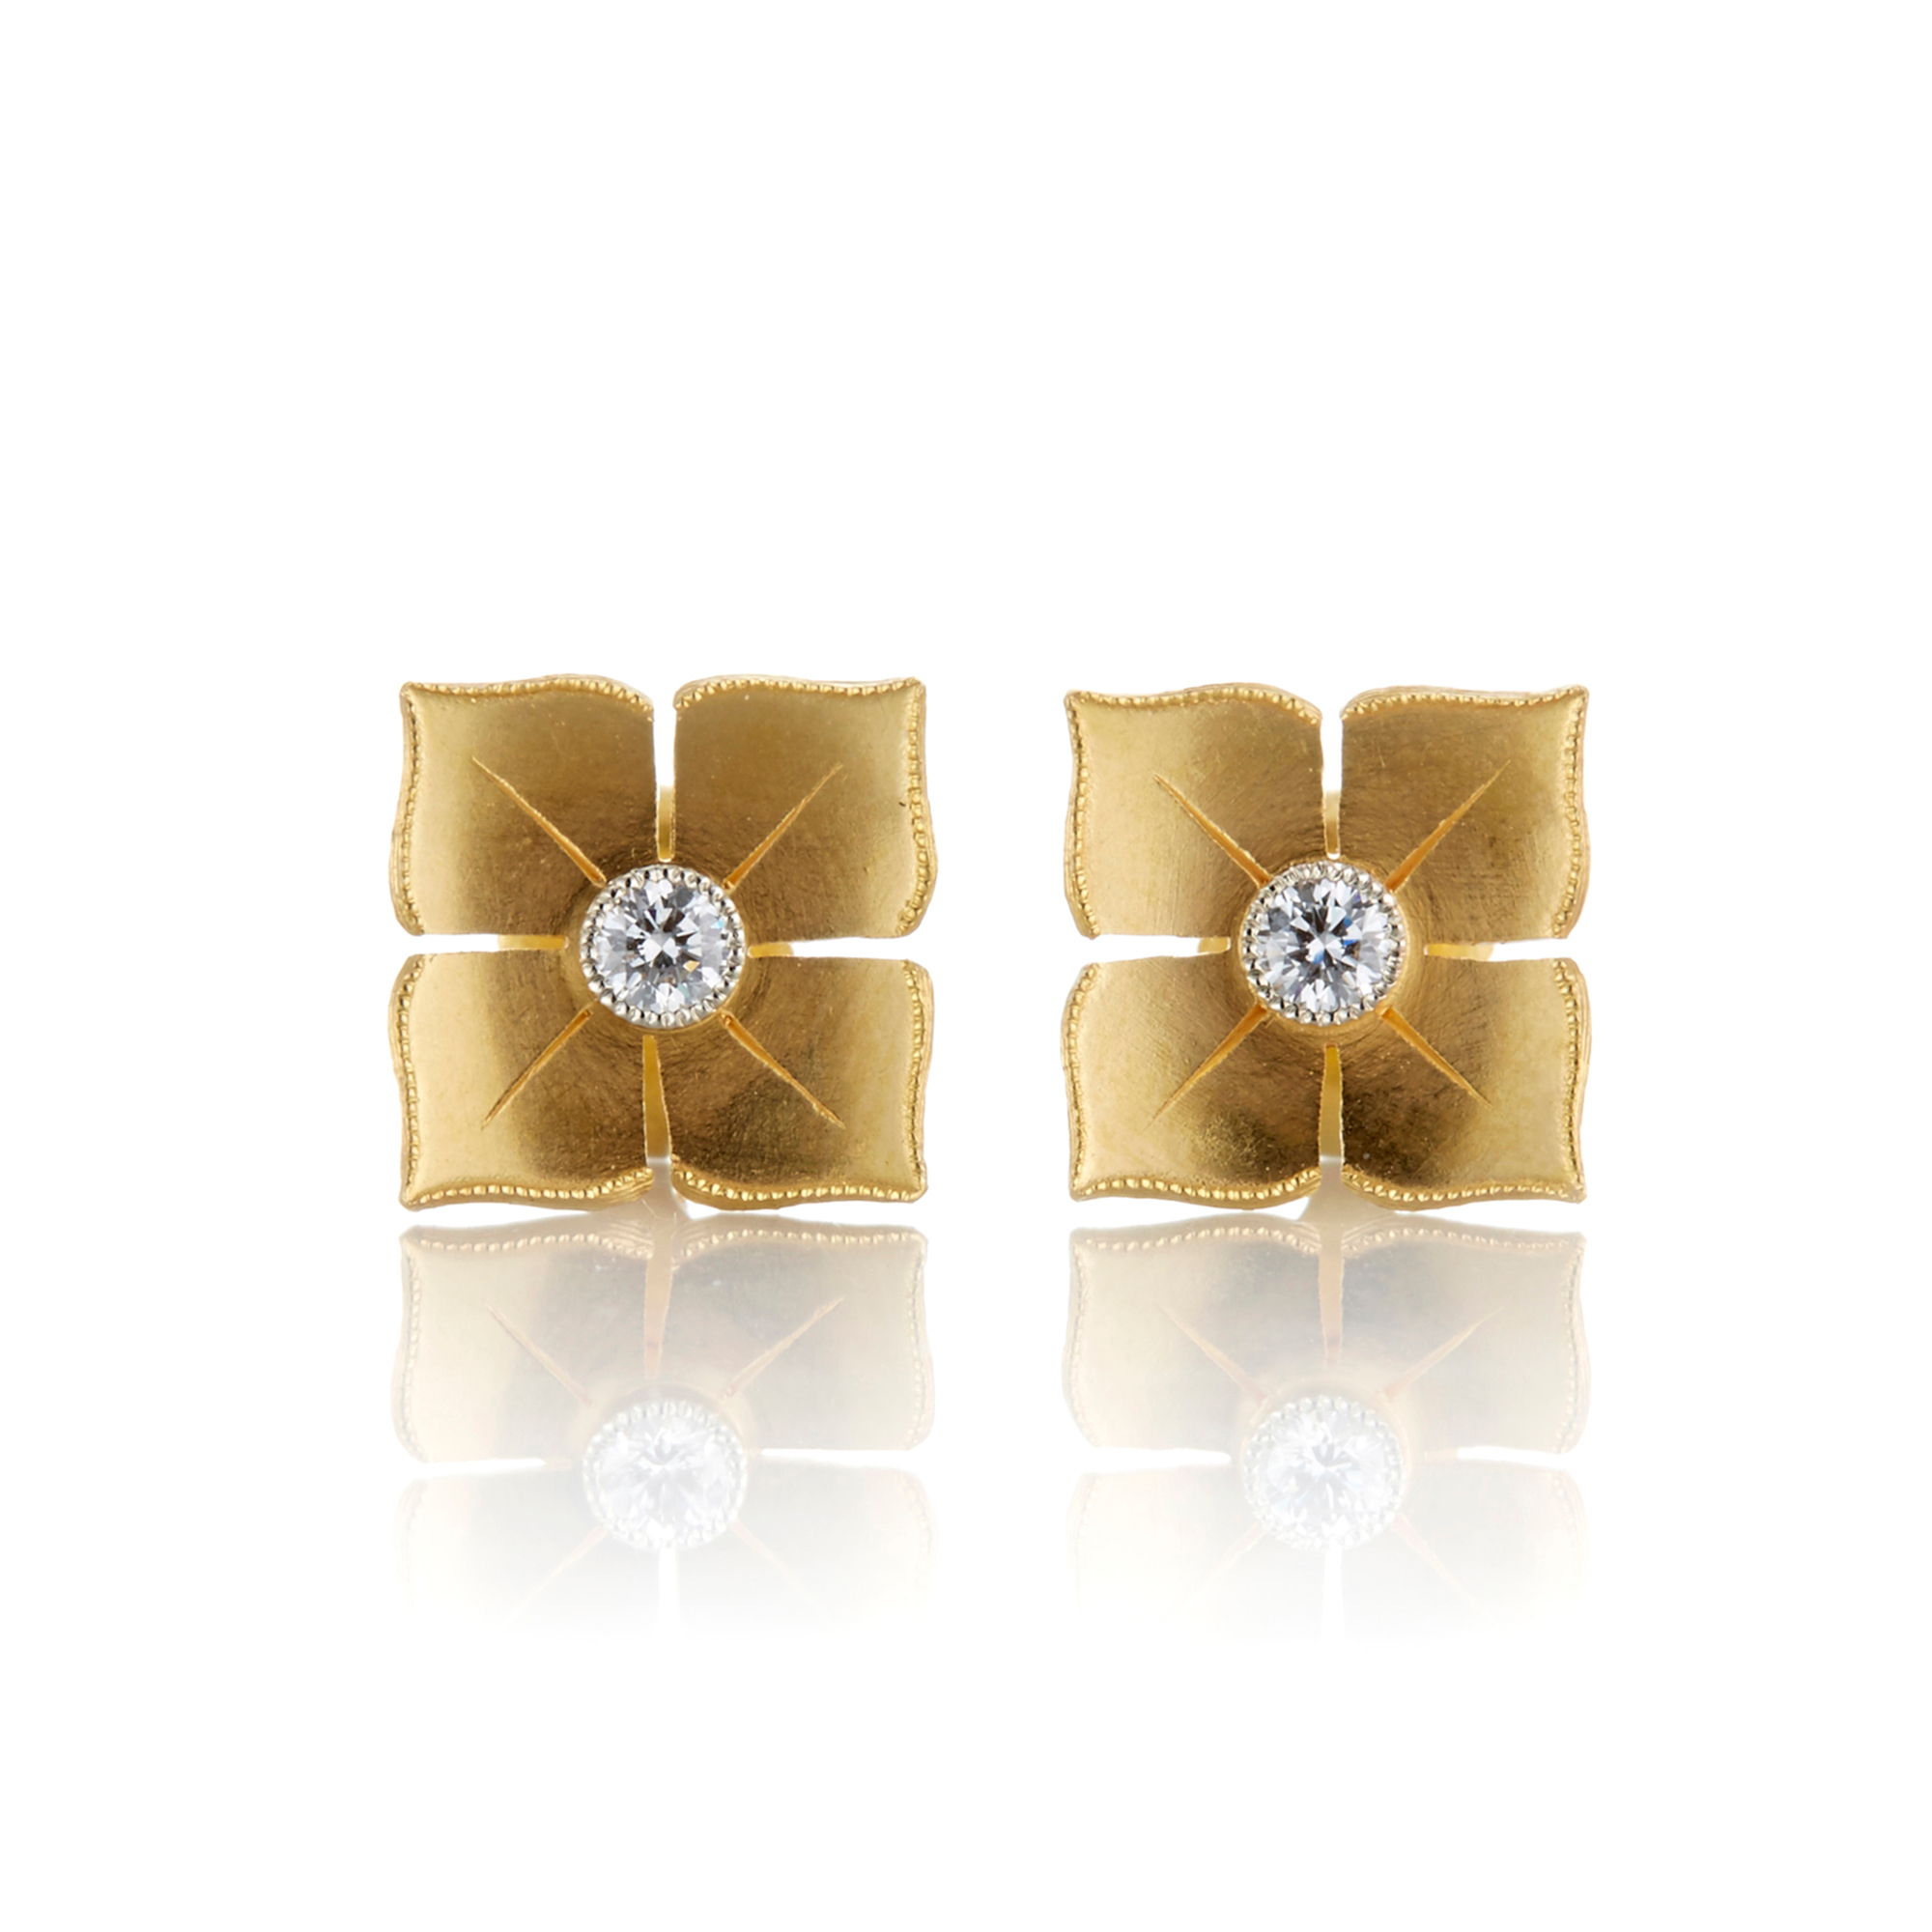 McTeigue & McClelland Platinum & Gold Petite Quadrille Stud Earrings